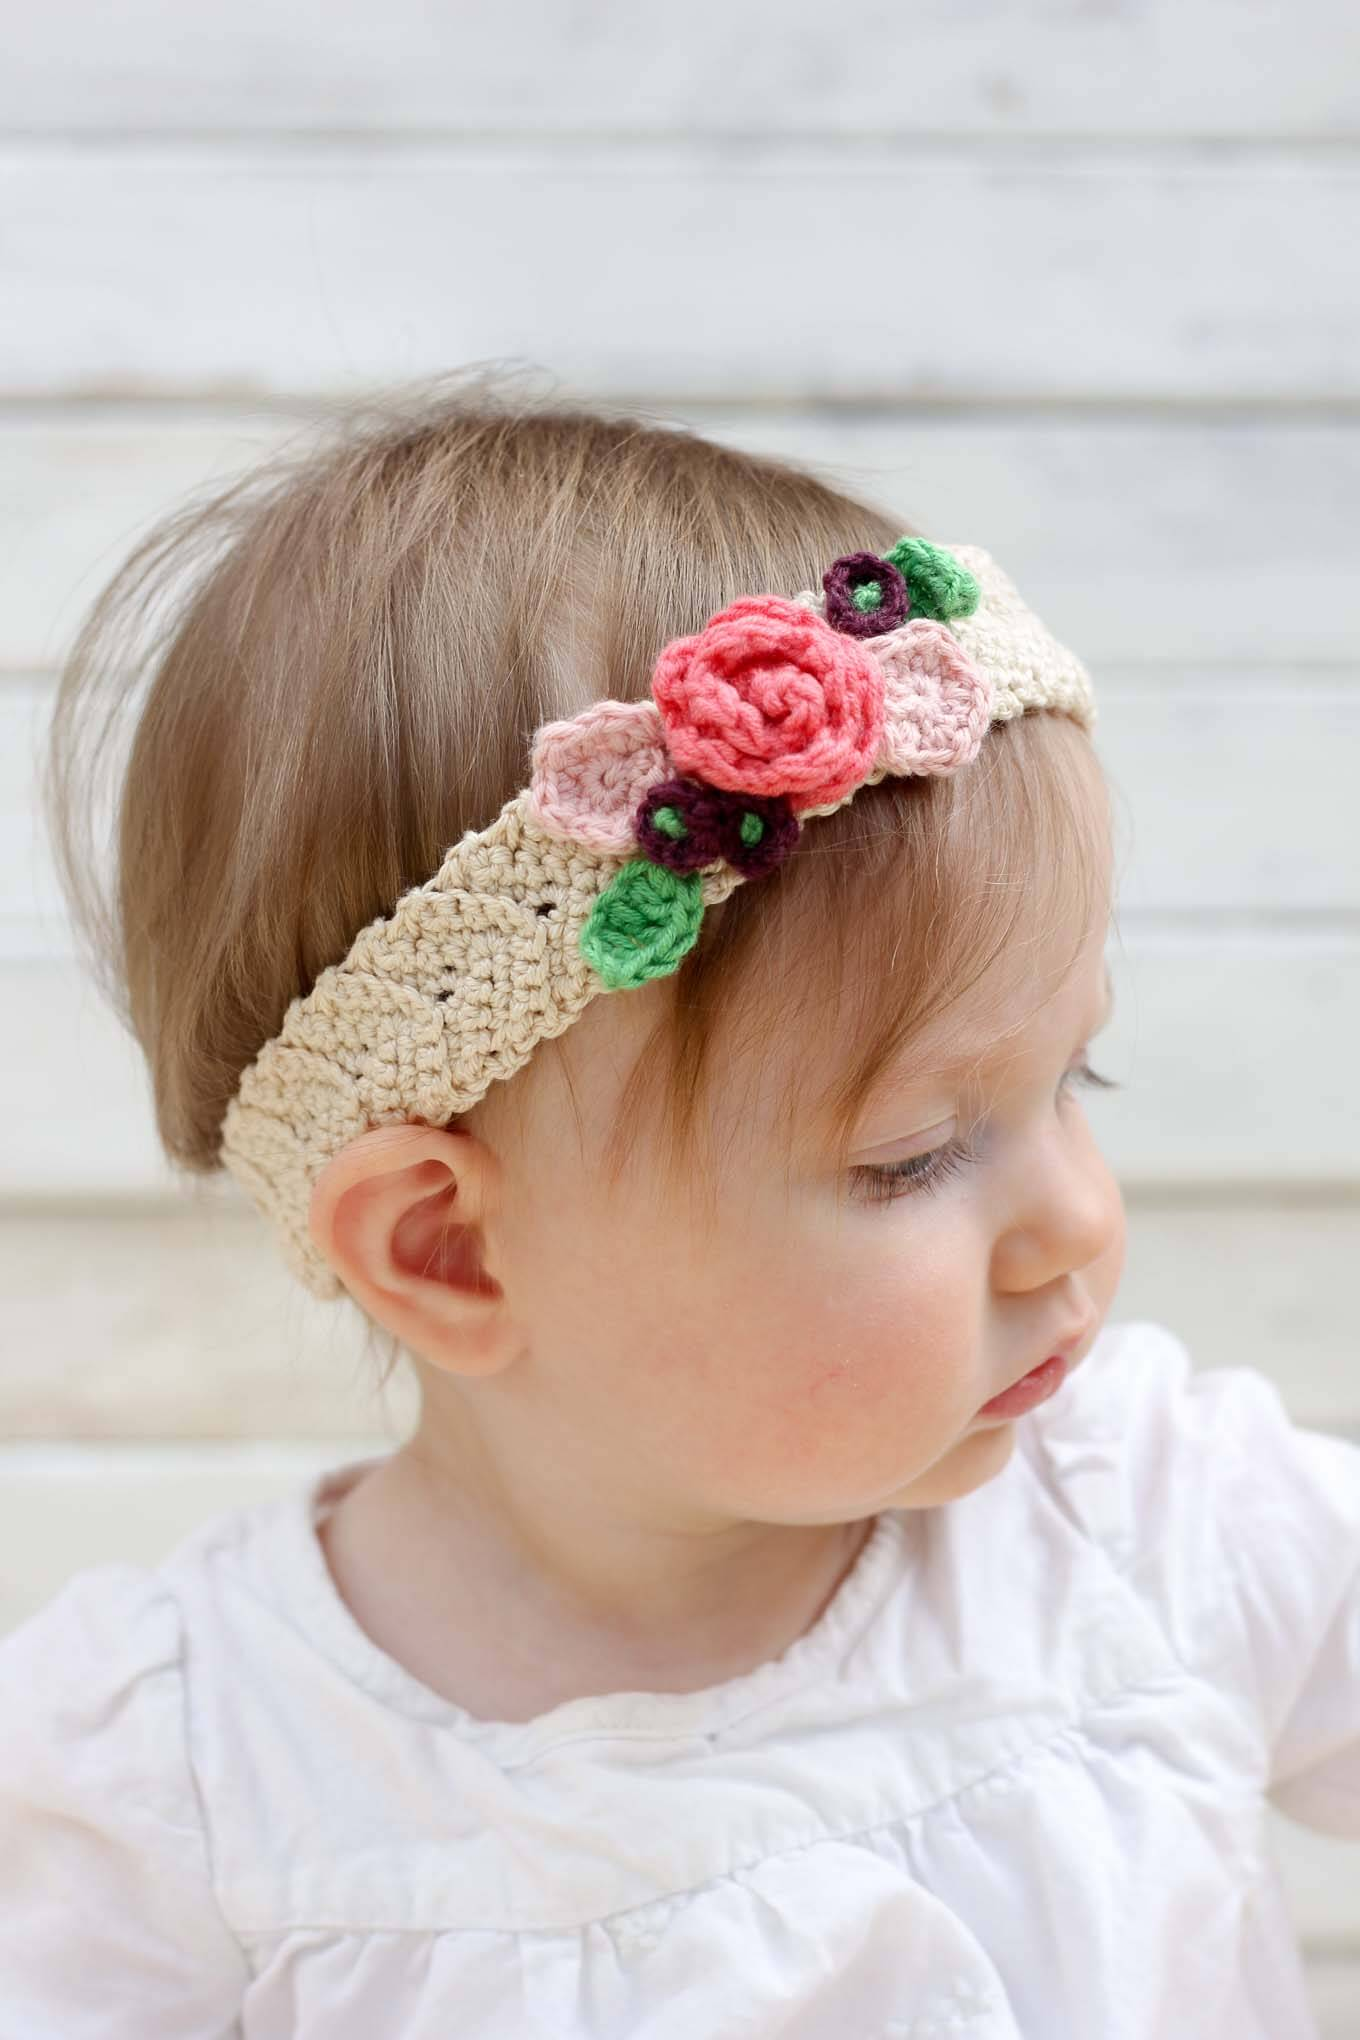 Free Crochet Pattern Flowers Headbands : Free Crochet Flower Headband Pattern (Baby, Toddler, Adult)